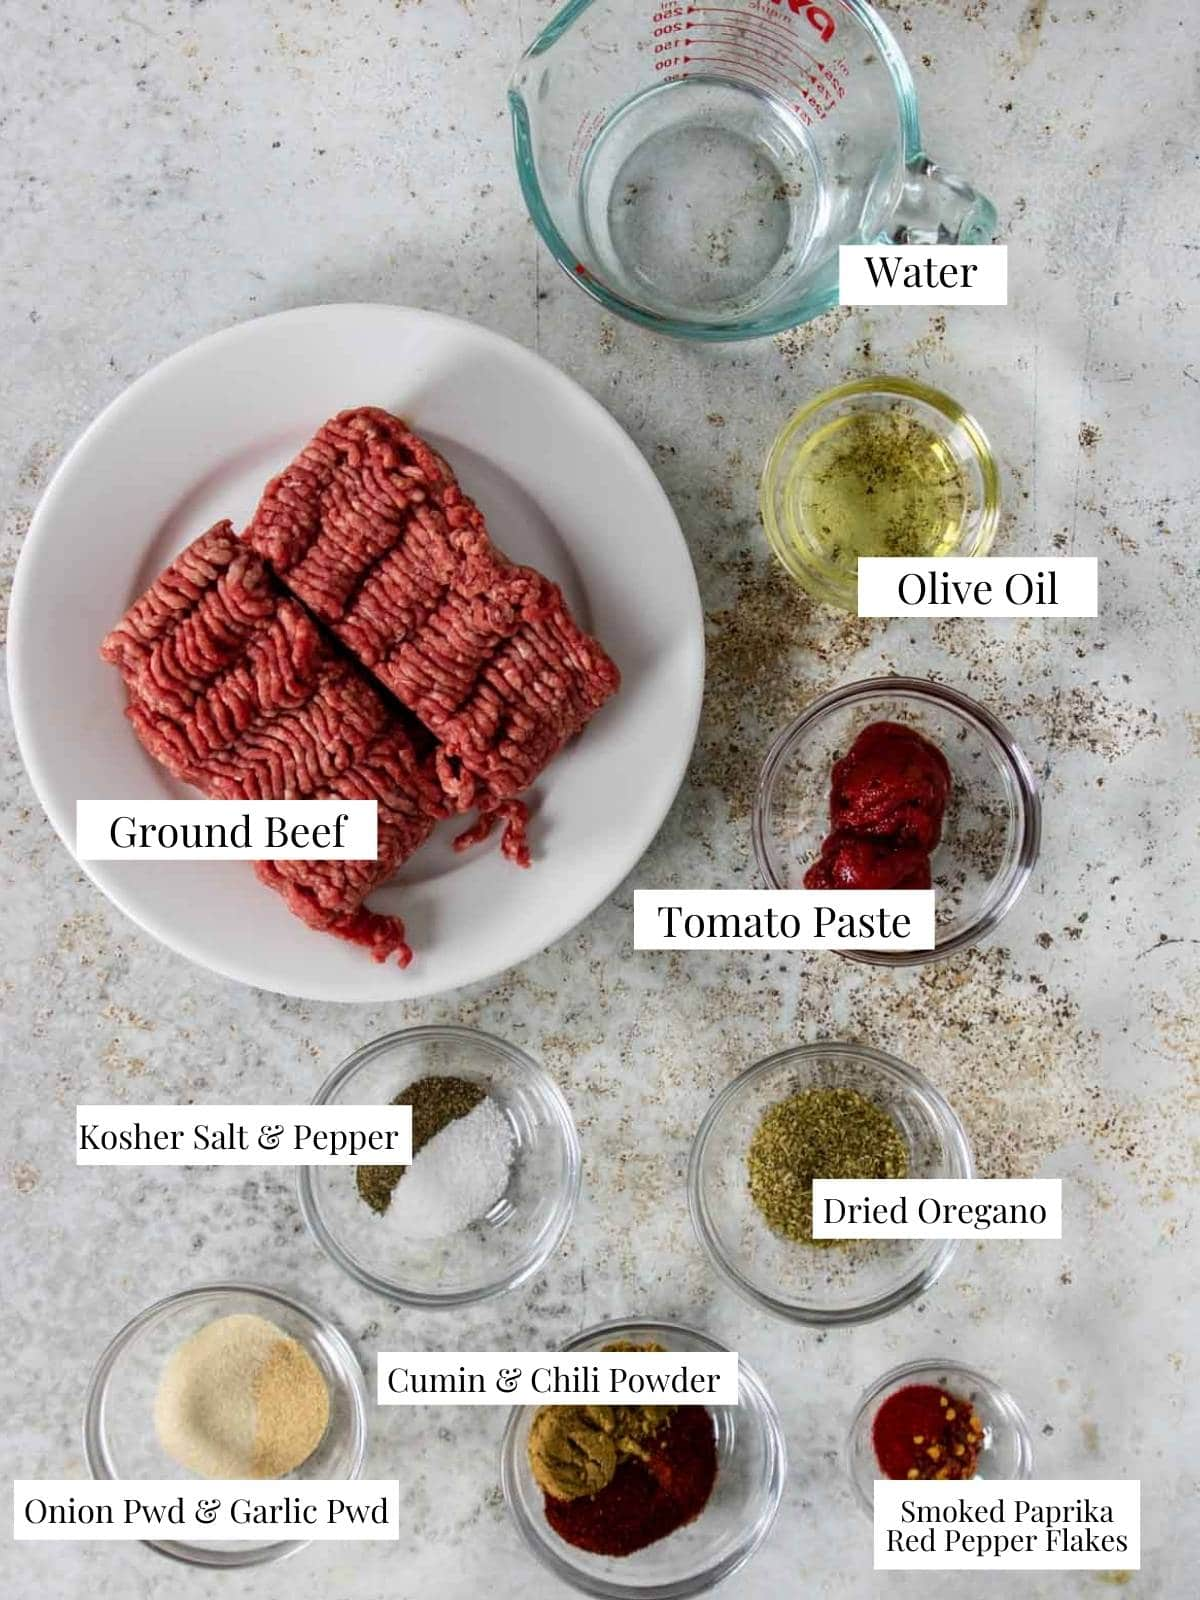 Ground beef taco ingredients with labels